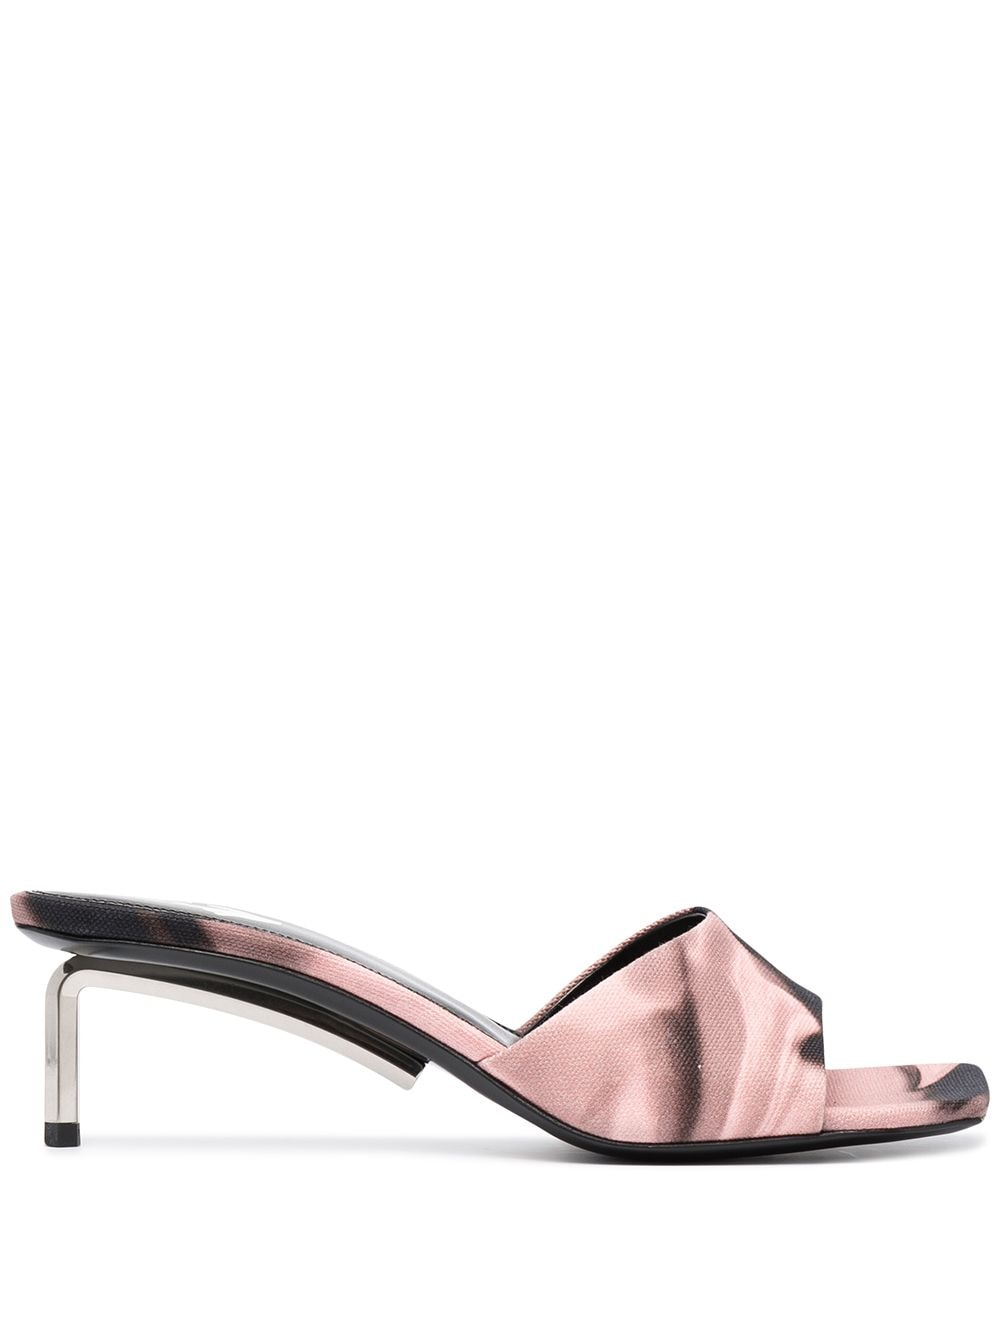 Off-White Women's Liquid Melt Open Toe Mule Sandal Pink